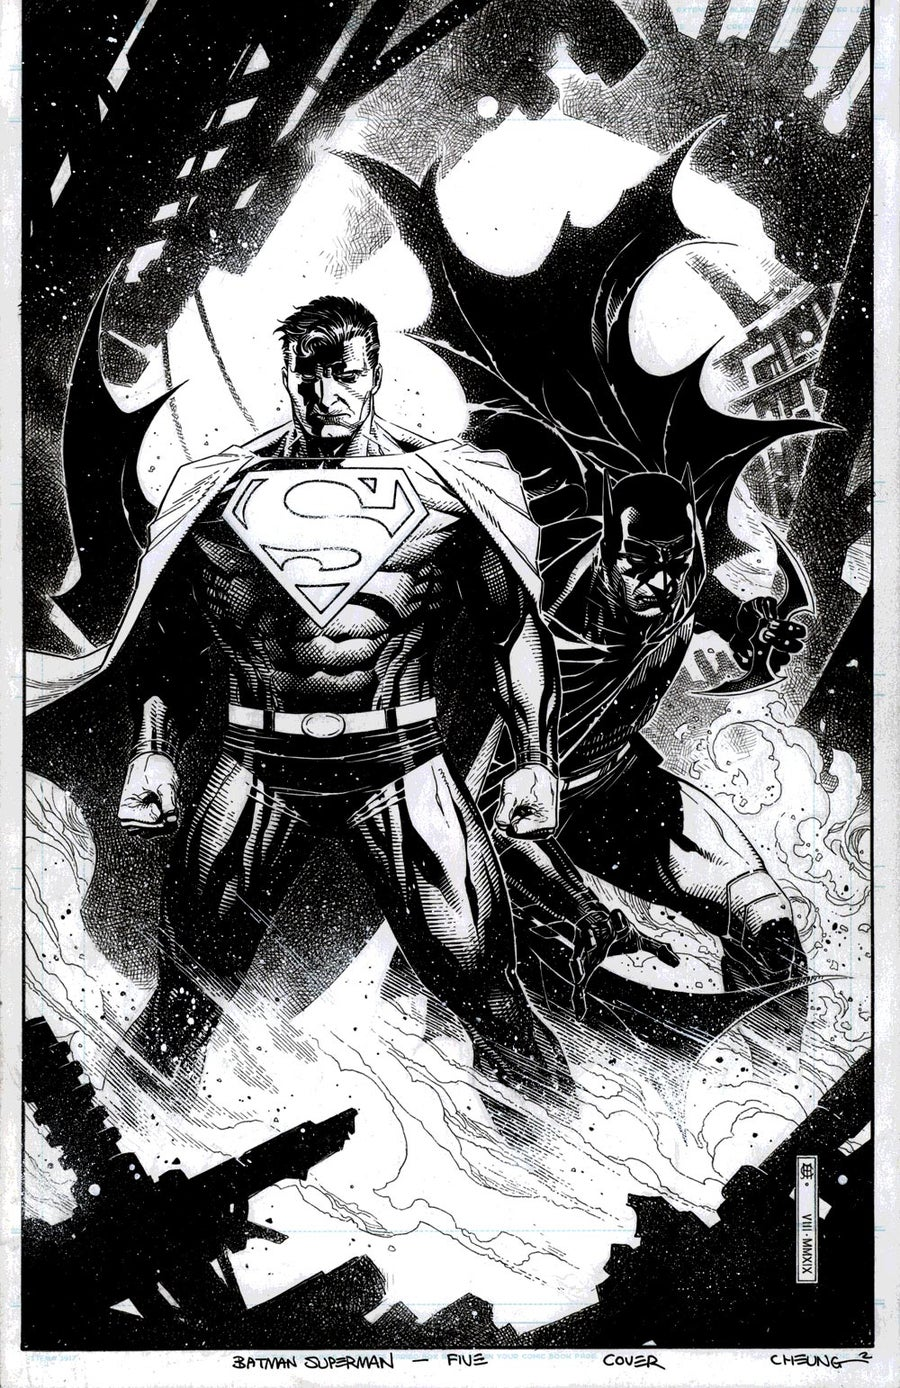 Image of BATMAN SUPERMAN #5 Variant Cover